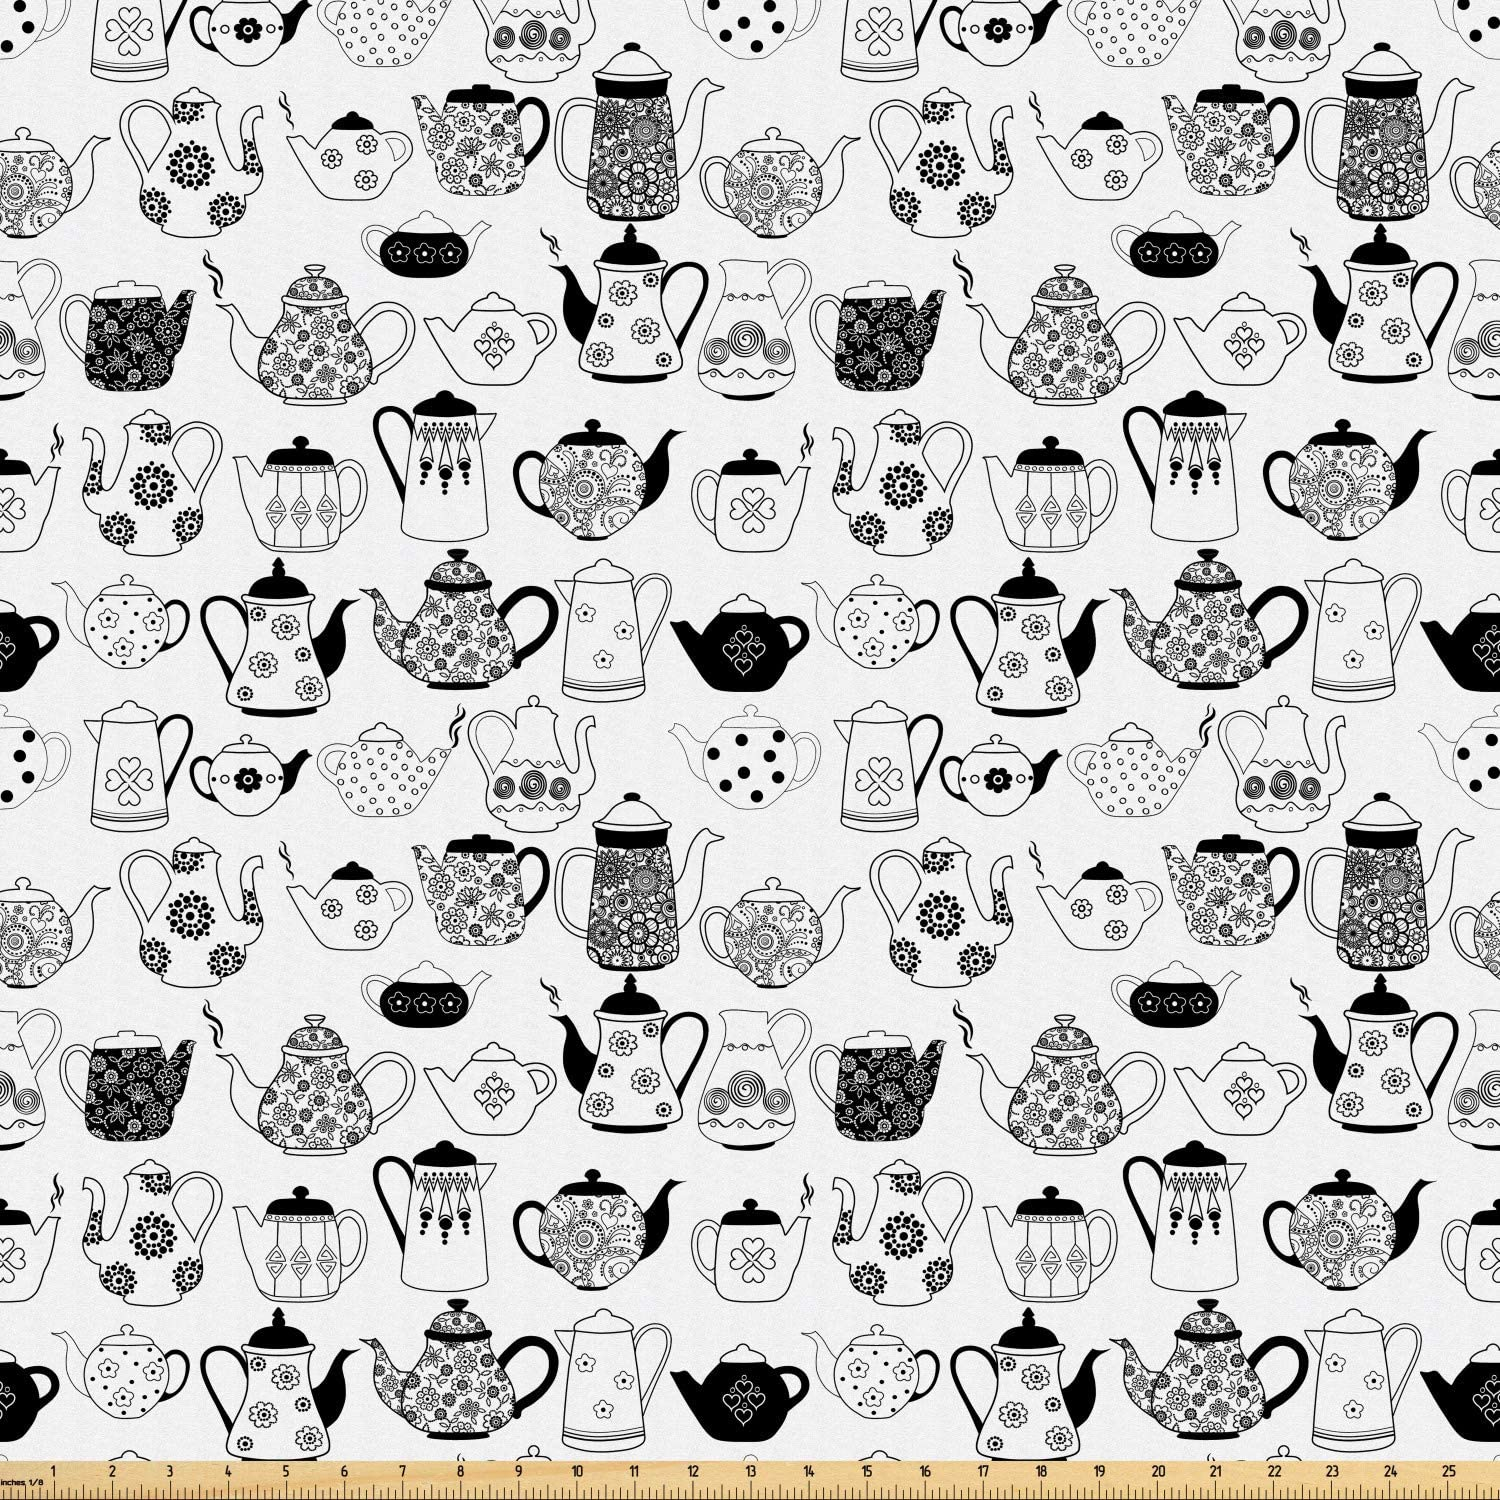 Ambesonne Tea Party Fabric by The Yard, Floral Patterned Cups with Different Designs Monochrome Timeless Kitchenware, Microfiber Fabric for Arts and Crafts Textiles & Decor, 1 Yard, Charcoal